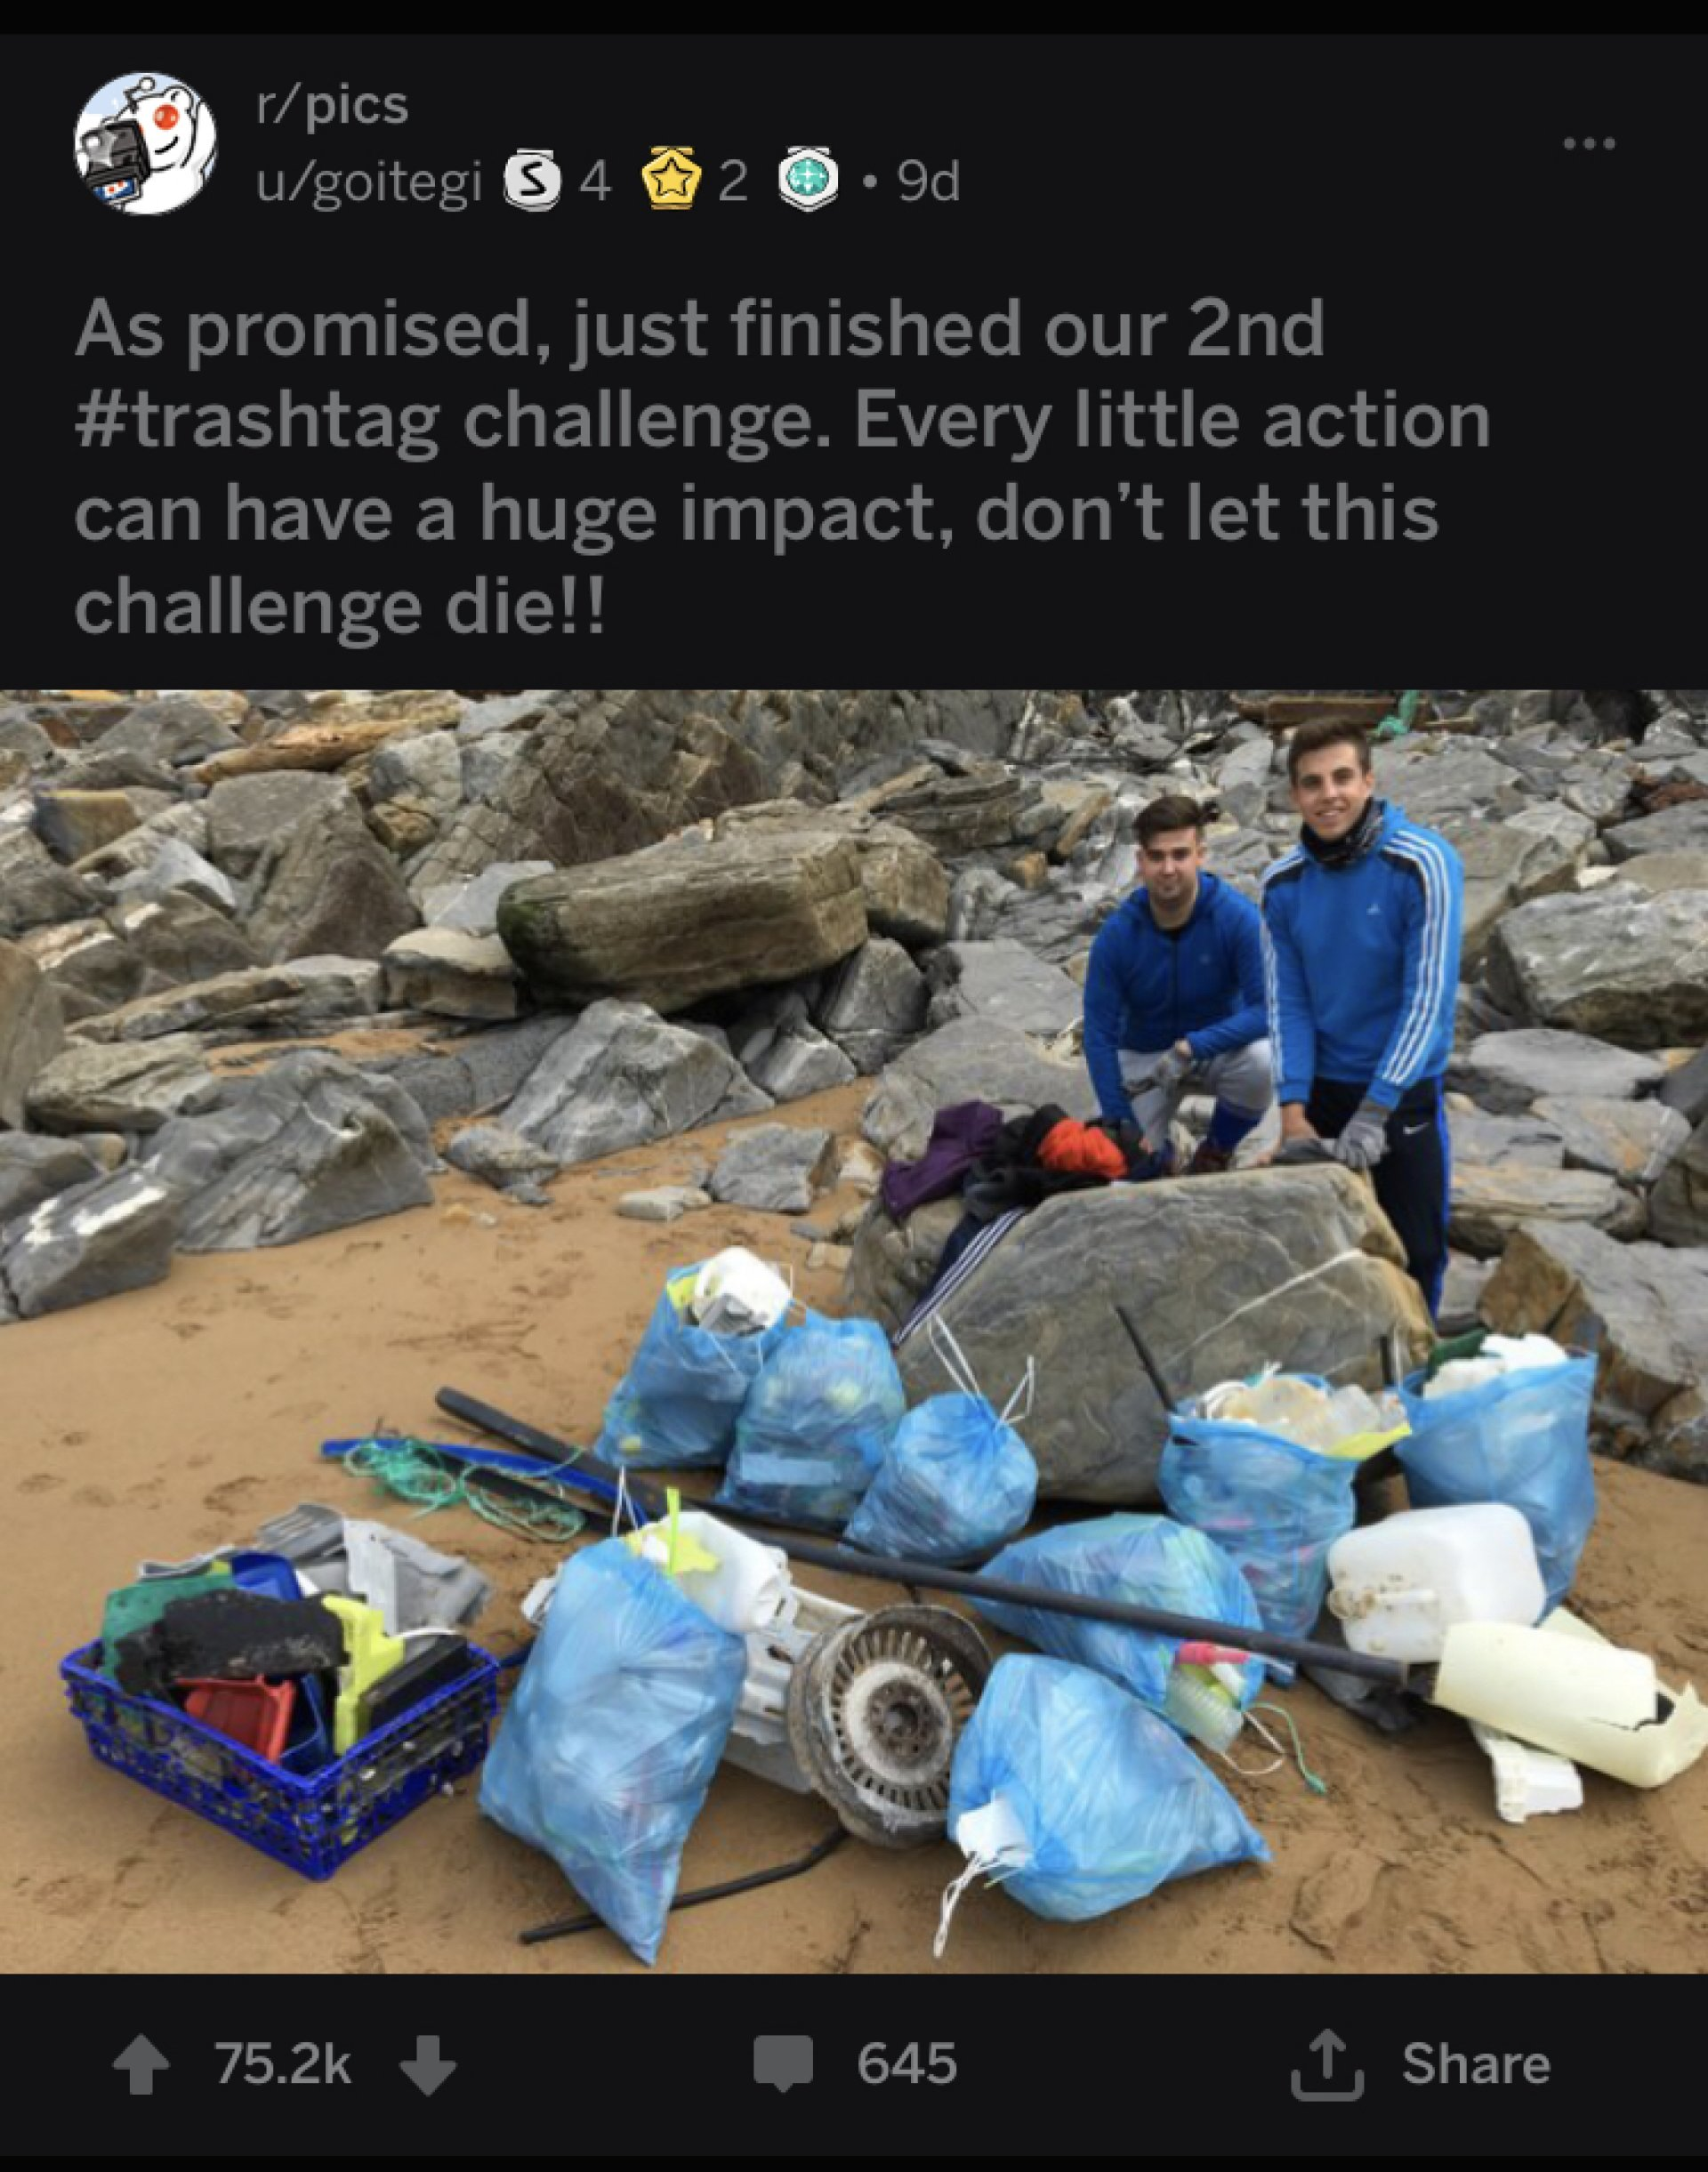 Aitor Olea (left) and Ander Bilbao (right) pose with their 3rd cleanup of beaches, Sopelena, Spain. | Photo Courtesy of Jon Ortega